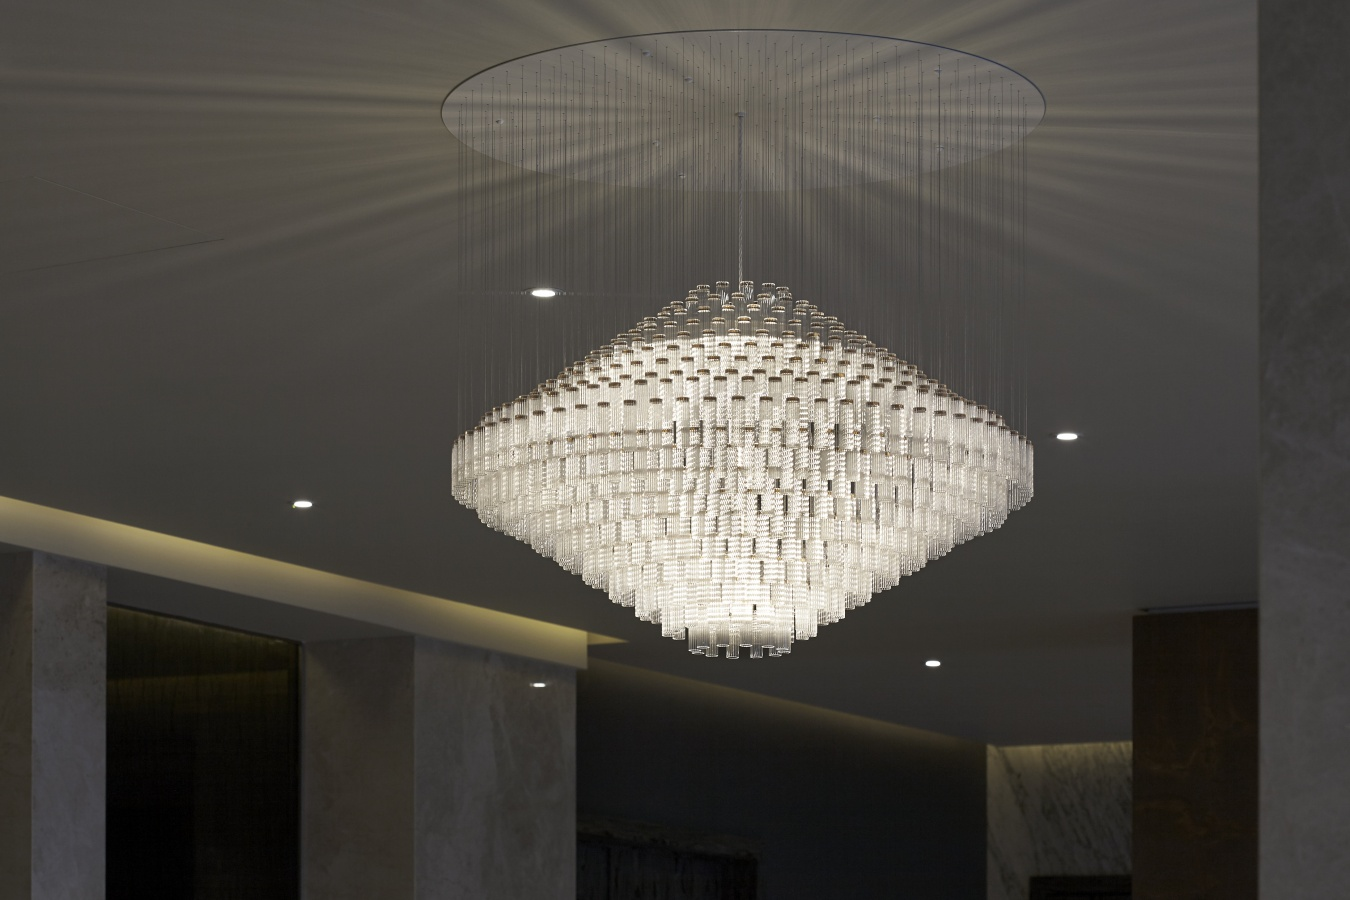 George Singer Modern Chandeliers And Lighting Installations Deco 3 Chandelier High Res Photo 2 Www Georgesinger Co Uk